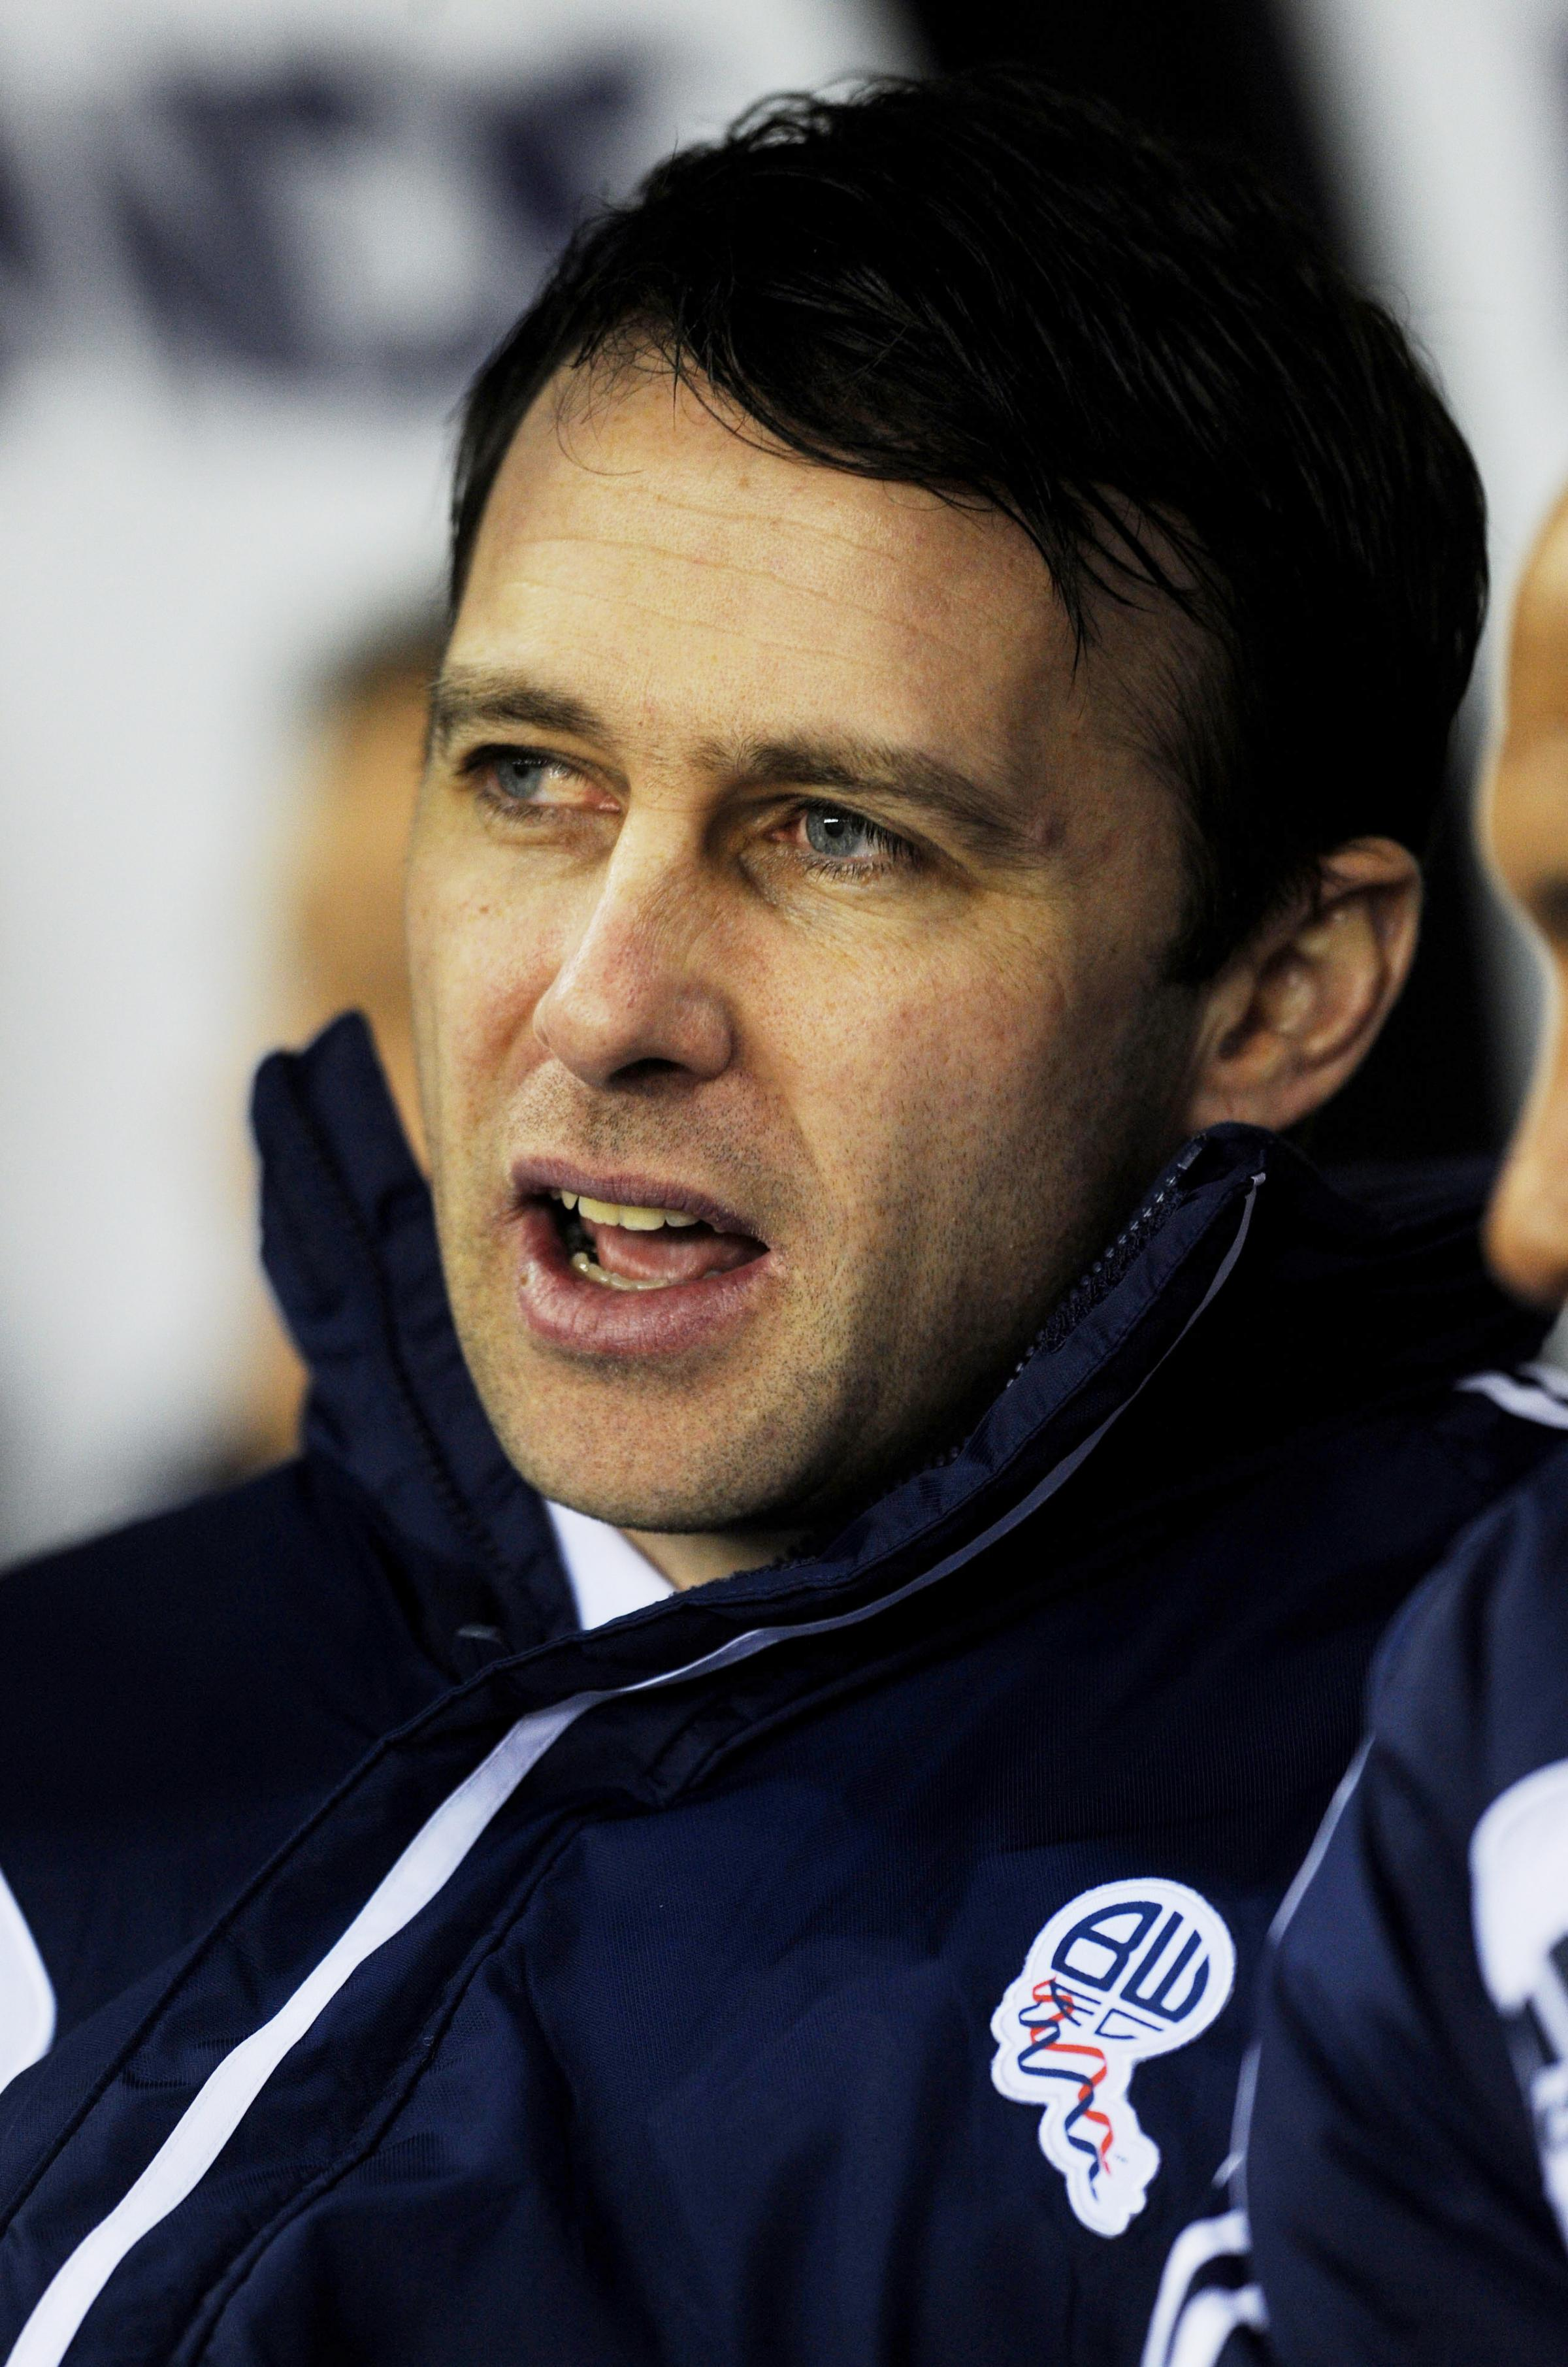 Dougie Freedman calls for more from his players in relegation scrap